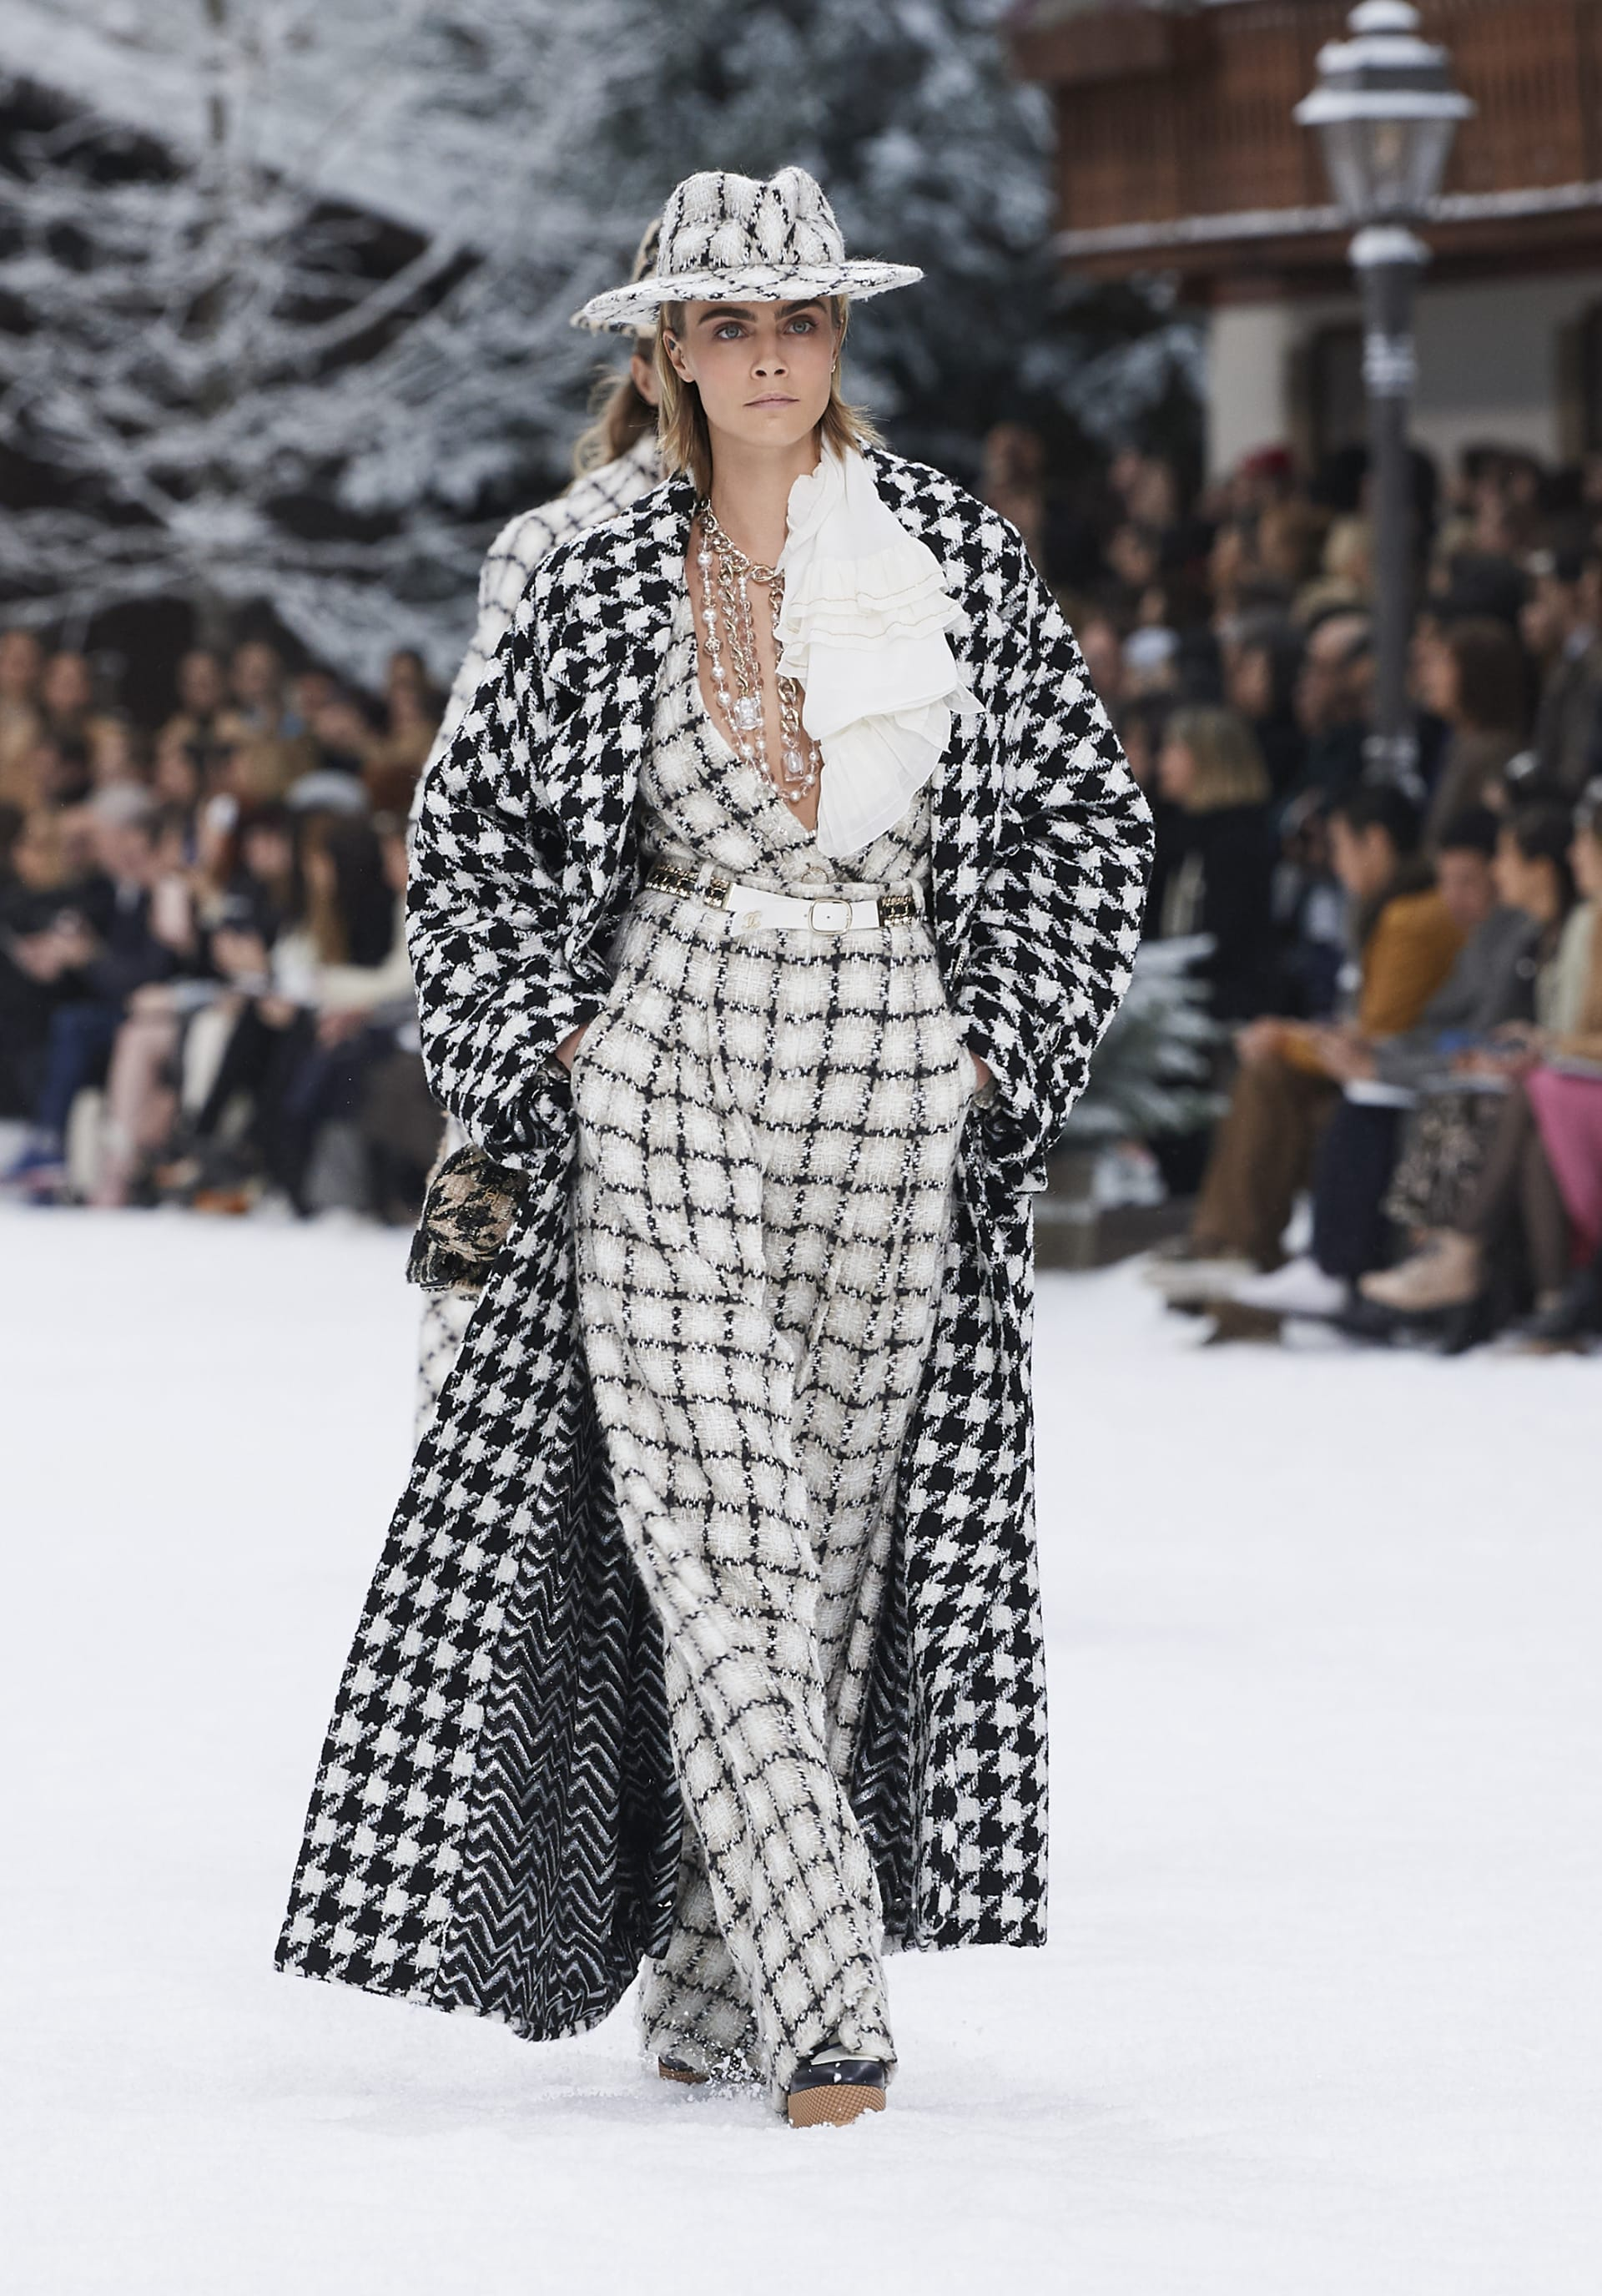 View 1 - Look 1 - Fall-Winter 2019/20